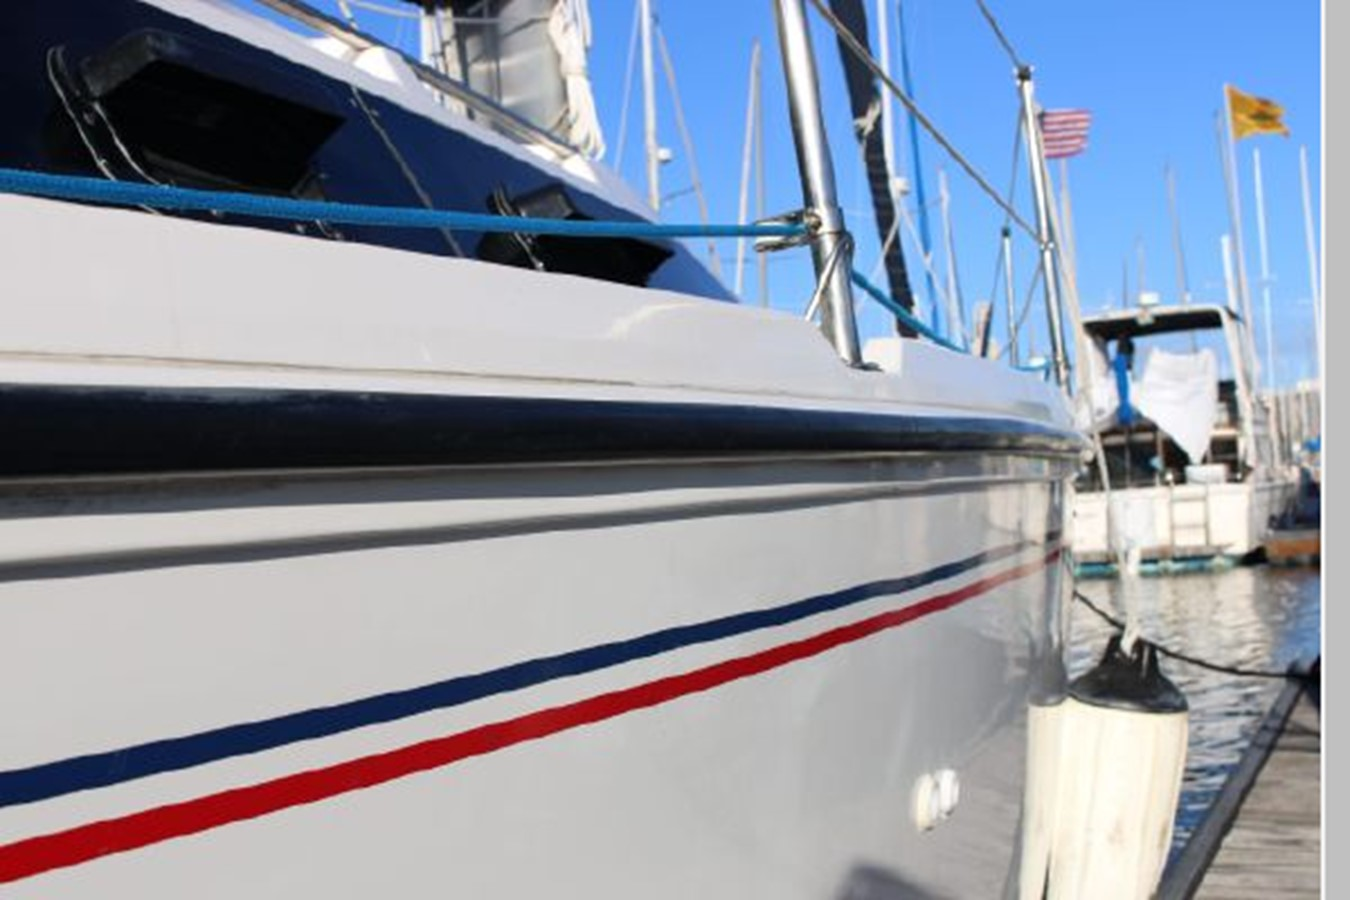 1993 HUNTER Vision 36 Cruising Sailboat 2599542